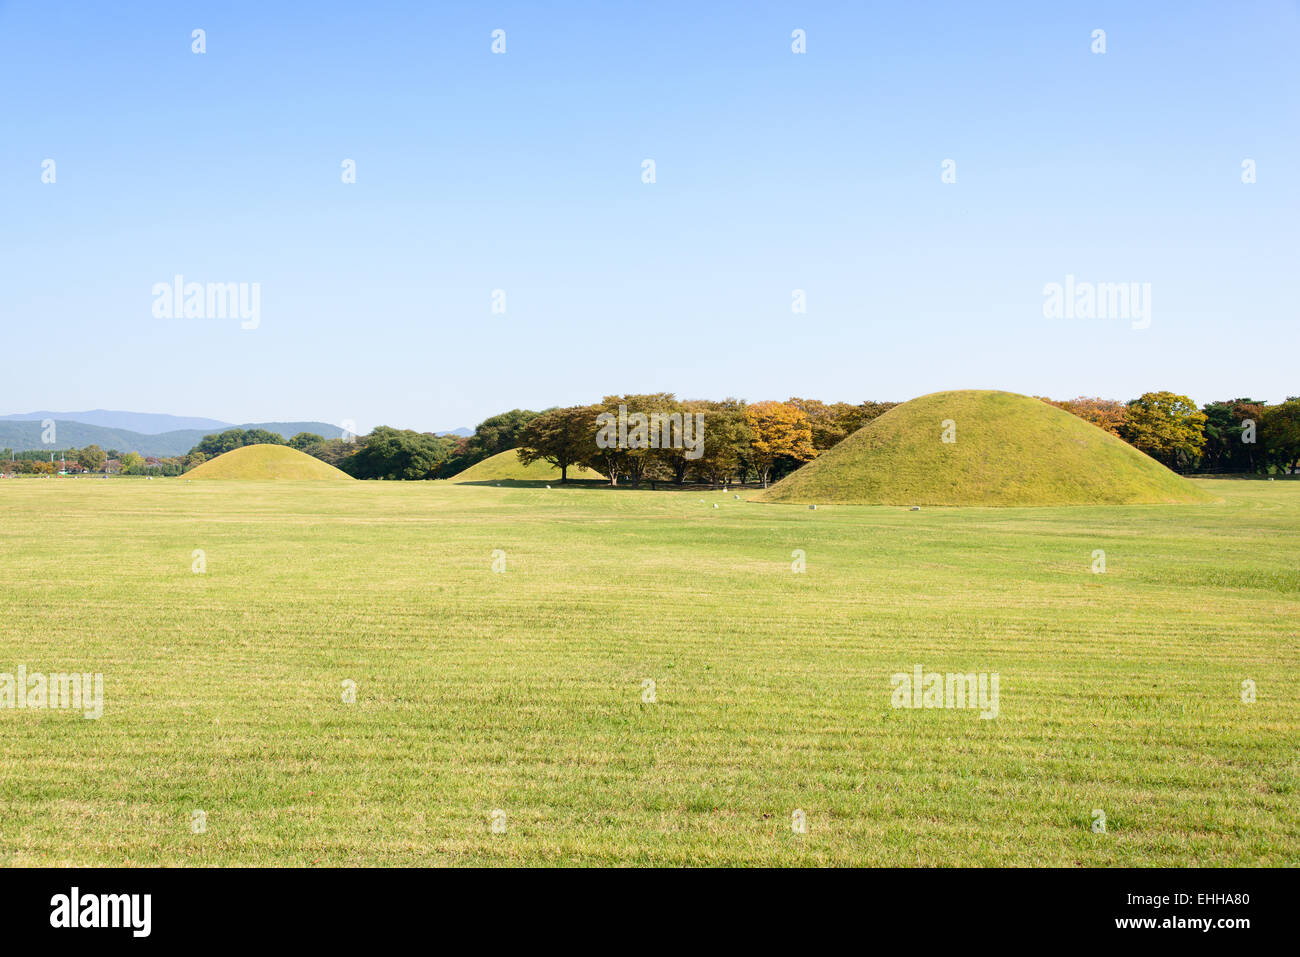 royal tombs located in Gyeongju in Silla kingdom. Silla was one of the kingdoms of acient Korea. Stock Photo